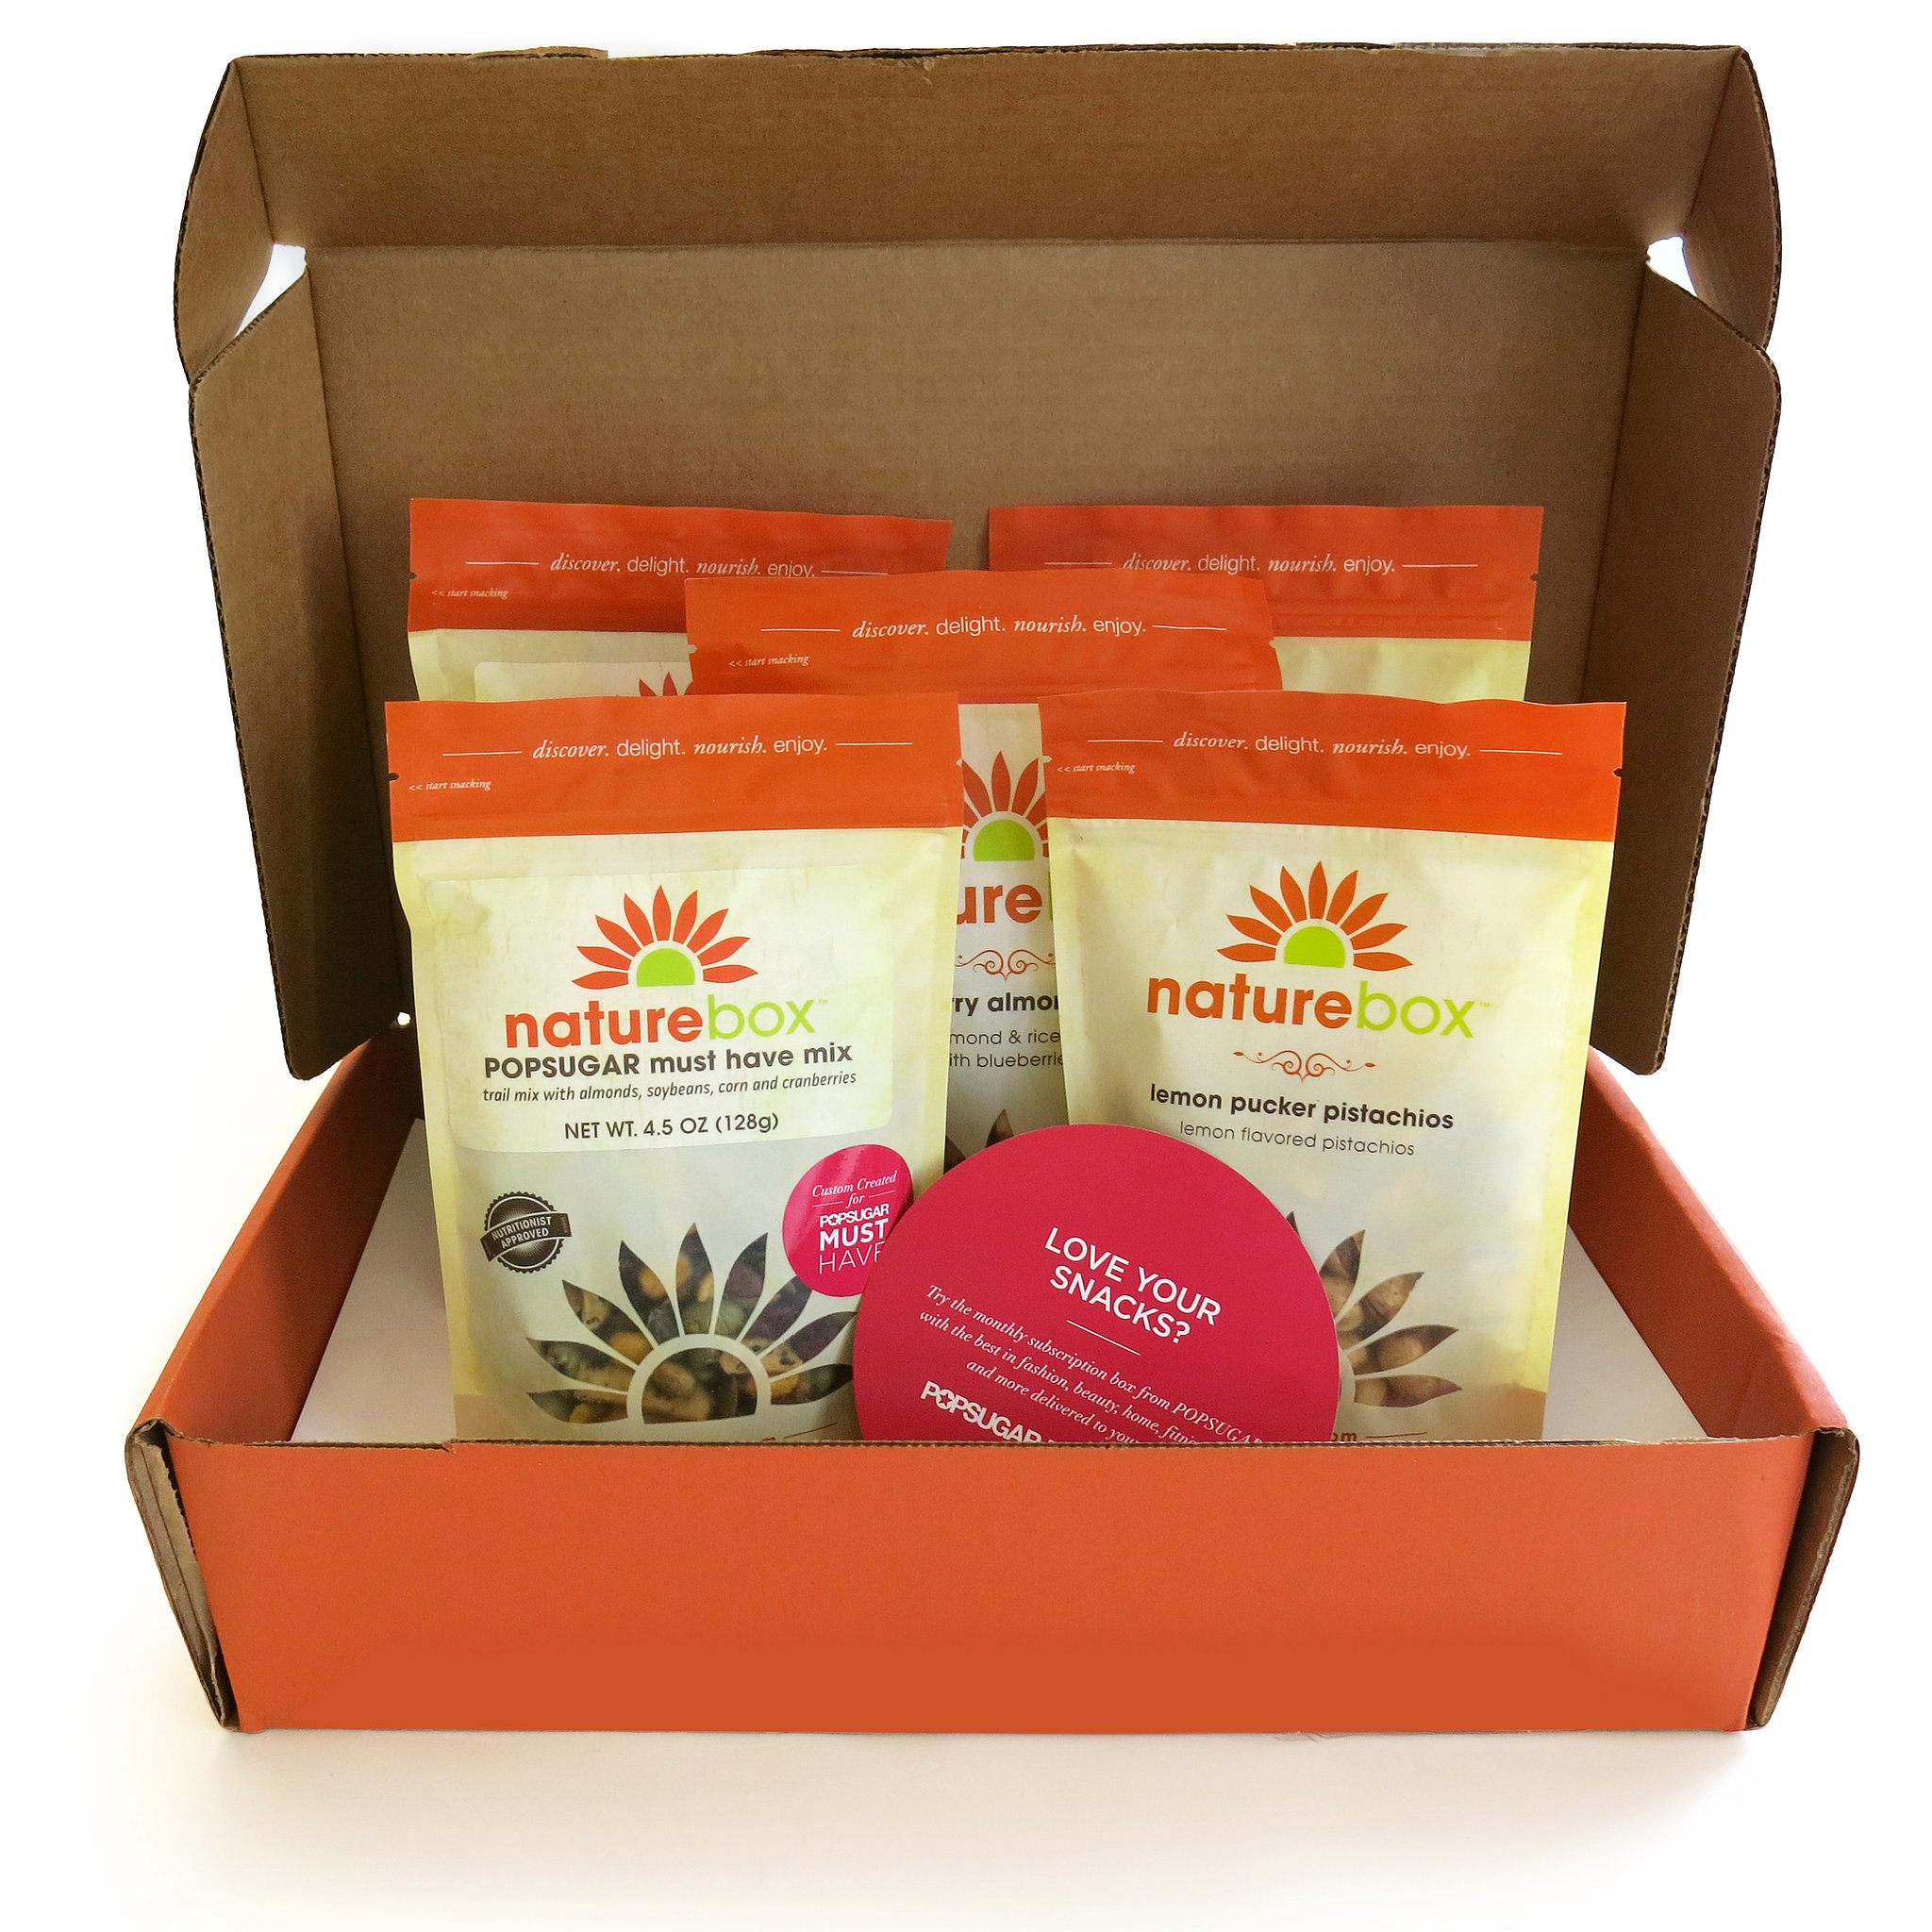 box nature naturebox snacks must popsugar snack wife mom gift healthy shares ingredients